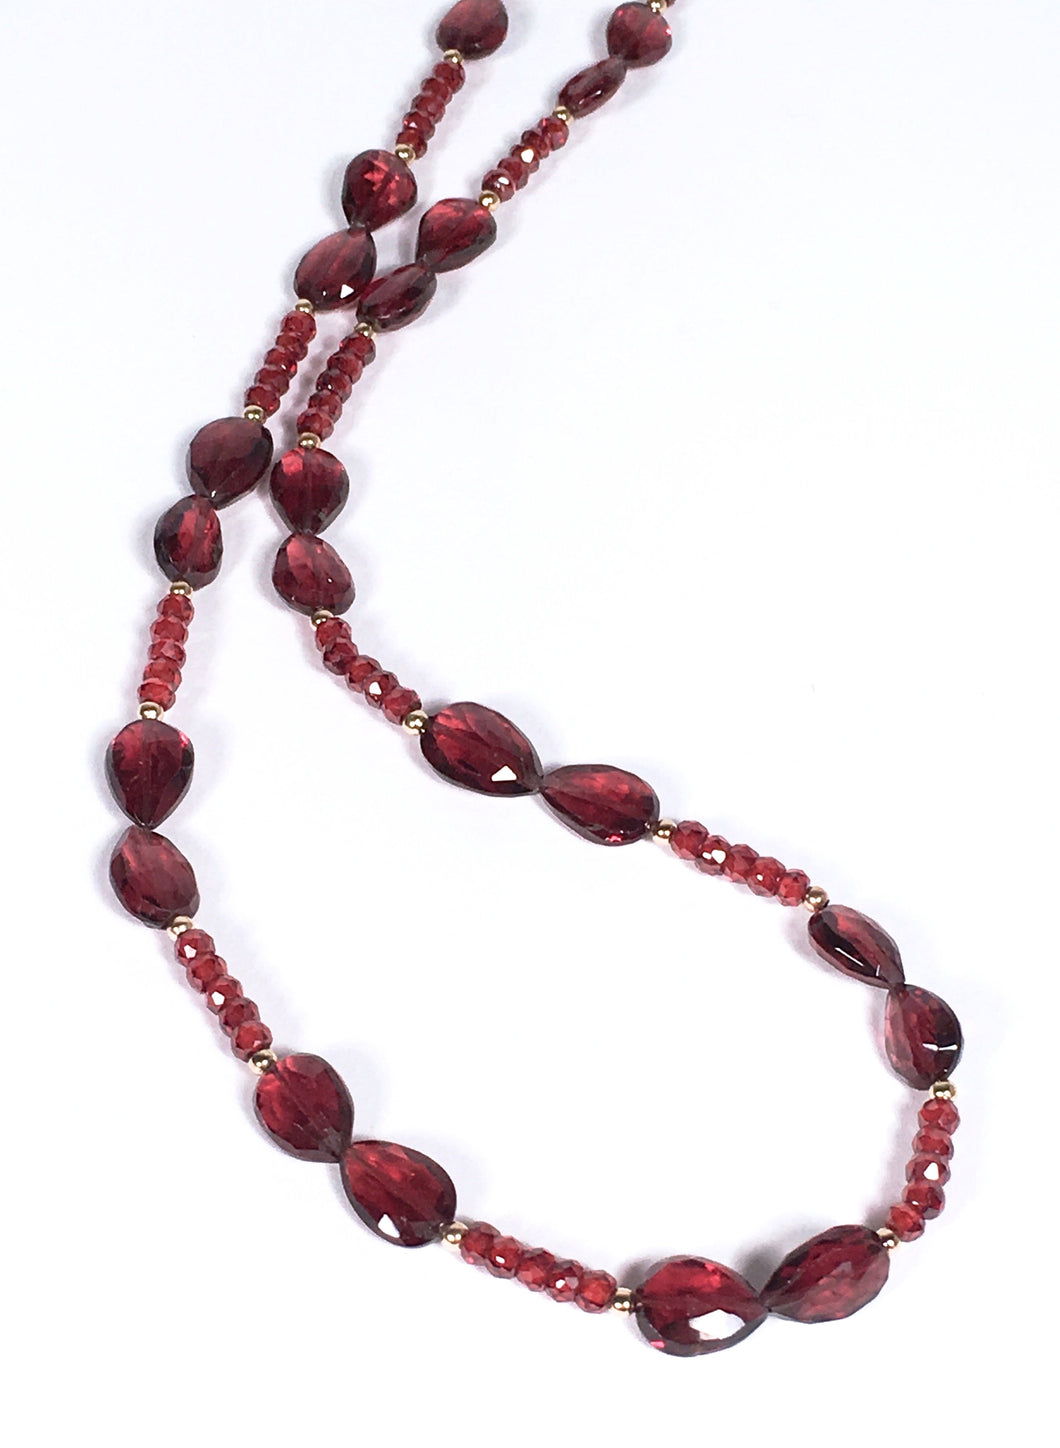 Faceted Garnet Necklace - This Season's Most Popular Color!